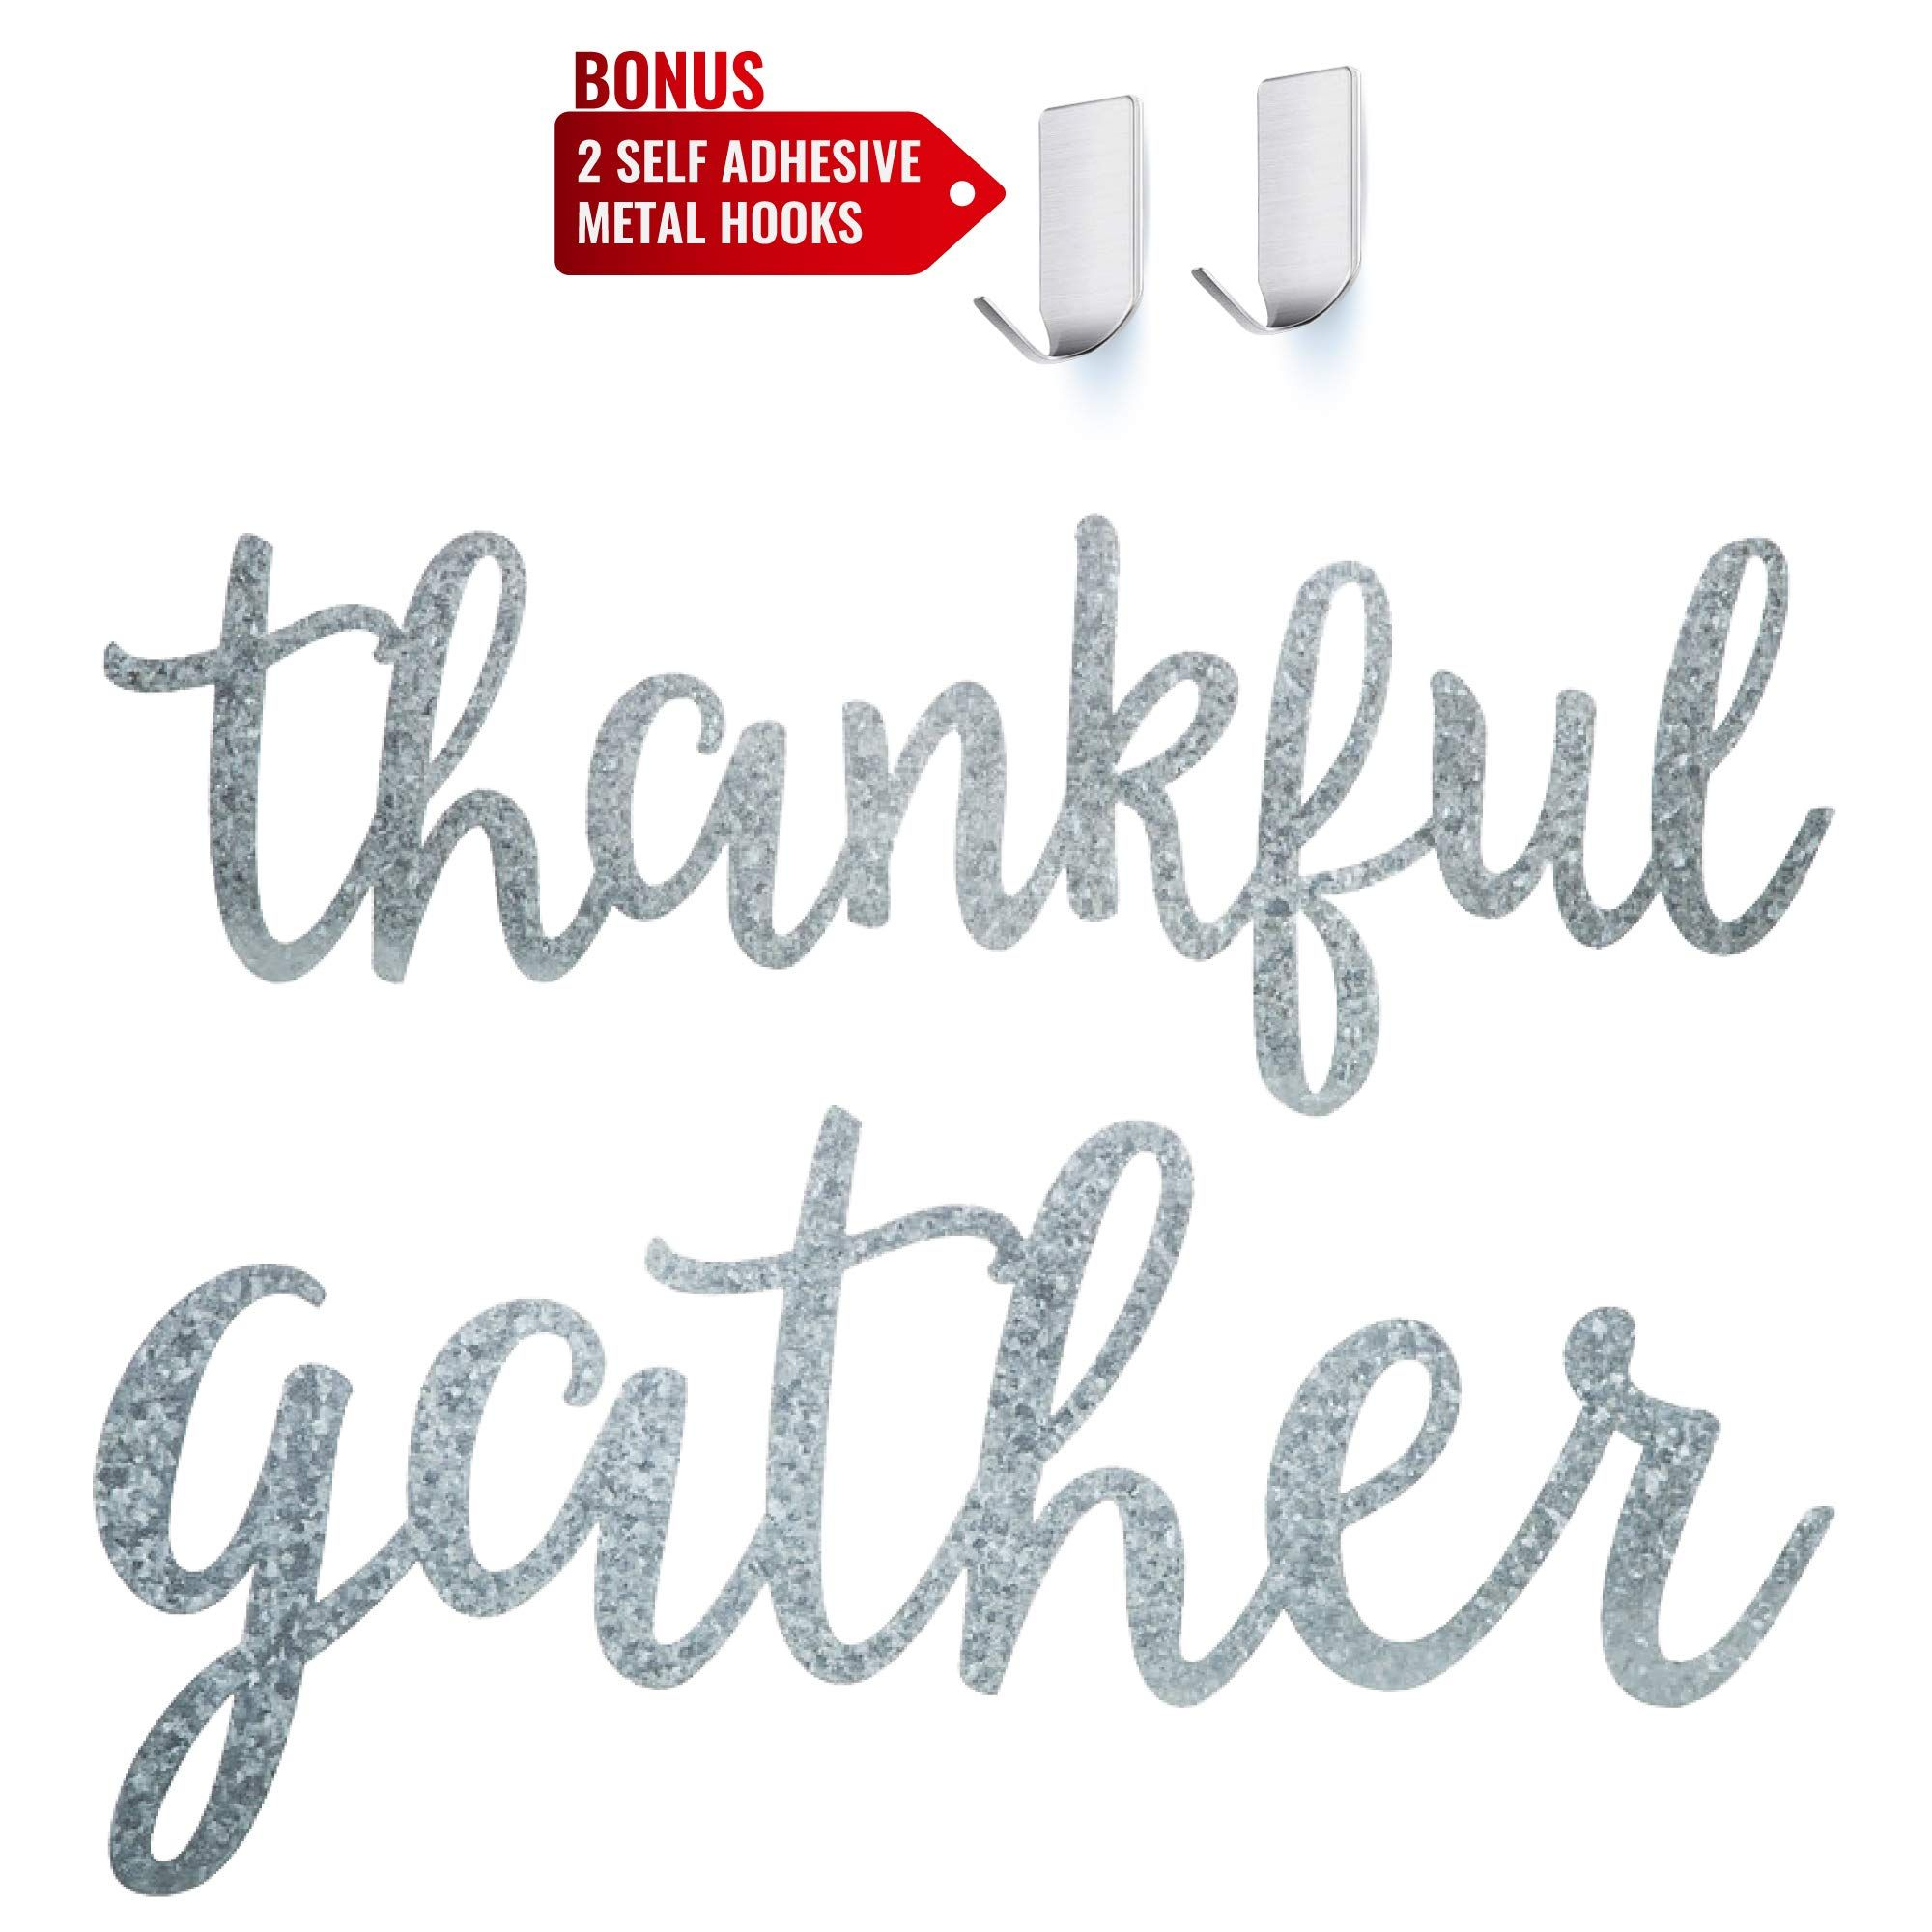 Gather Thankful Galvanized Metal Signs In 2020 Adhesive Wall Hooks Metal Signs Sign Art